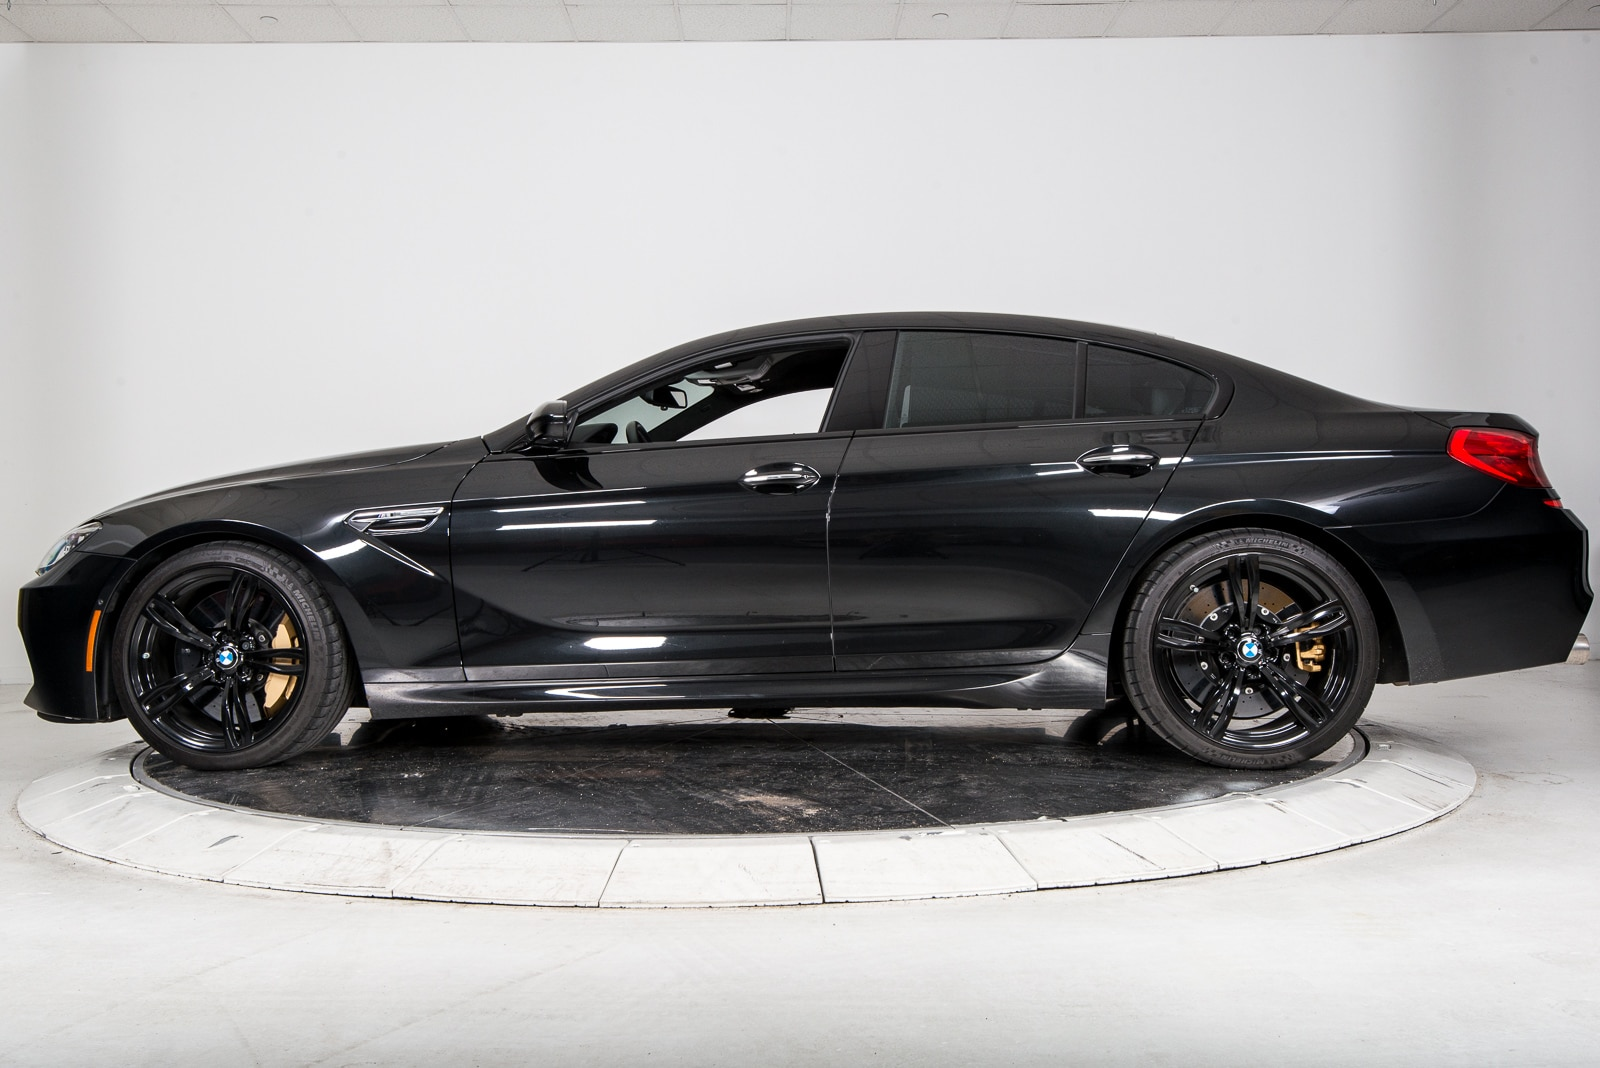 used 2014 bmw m6 gran coupe for sale fort lauderdale fl vin wbs6c9c54ed466777. Black Bedroom Furniture Sets. Home Design Ideas